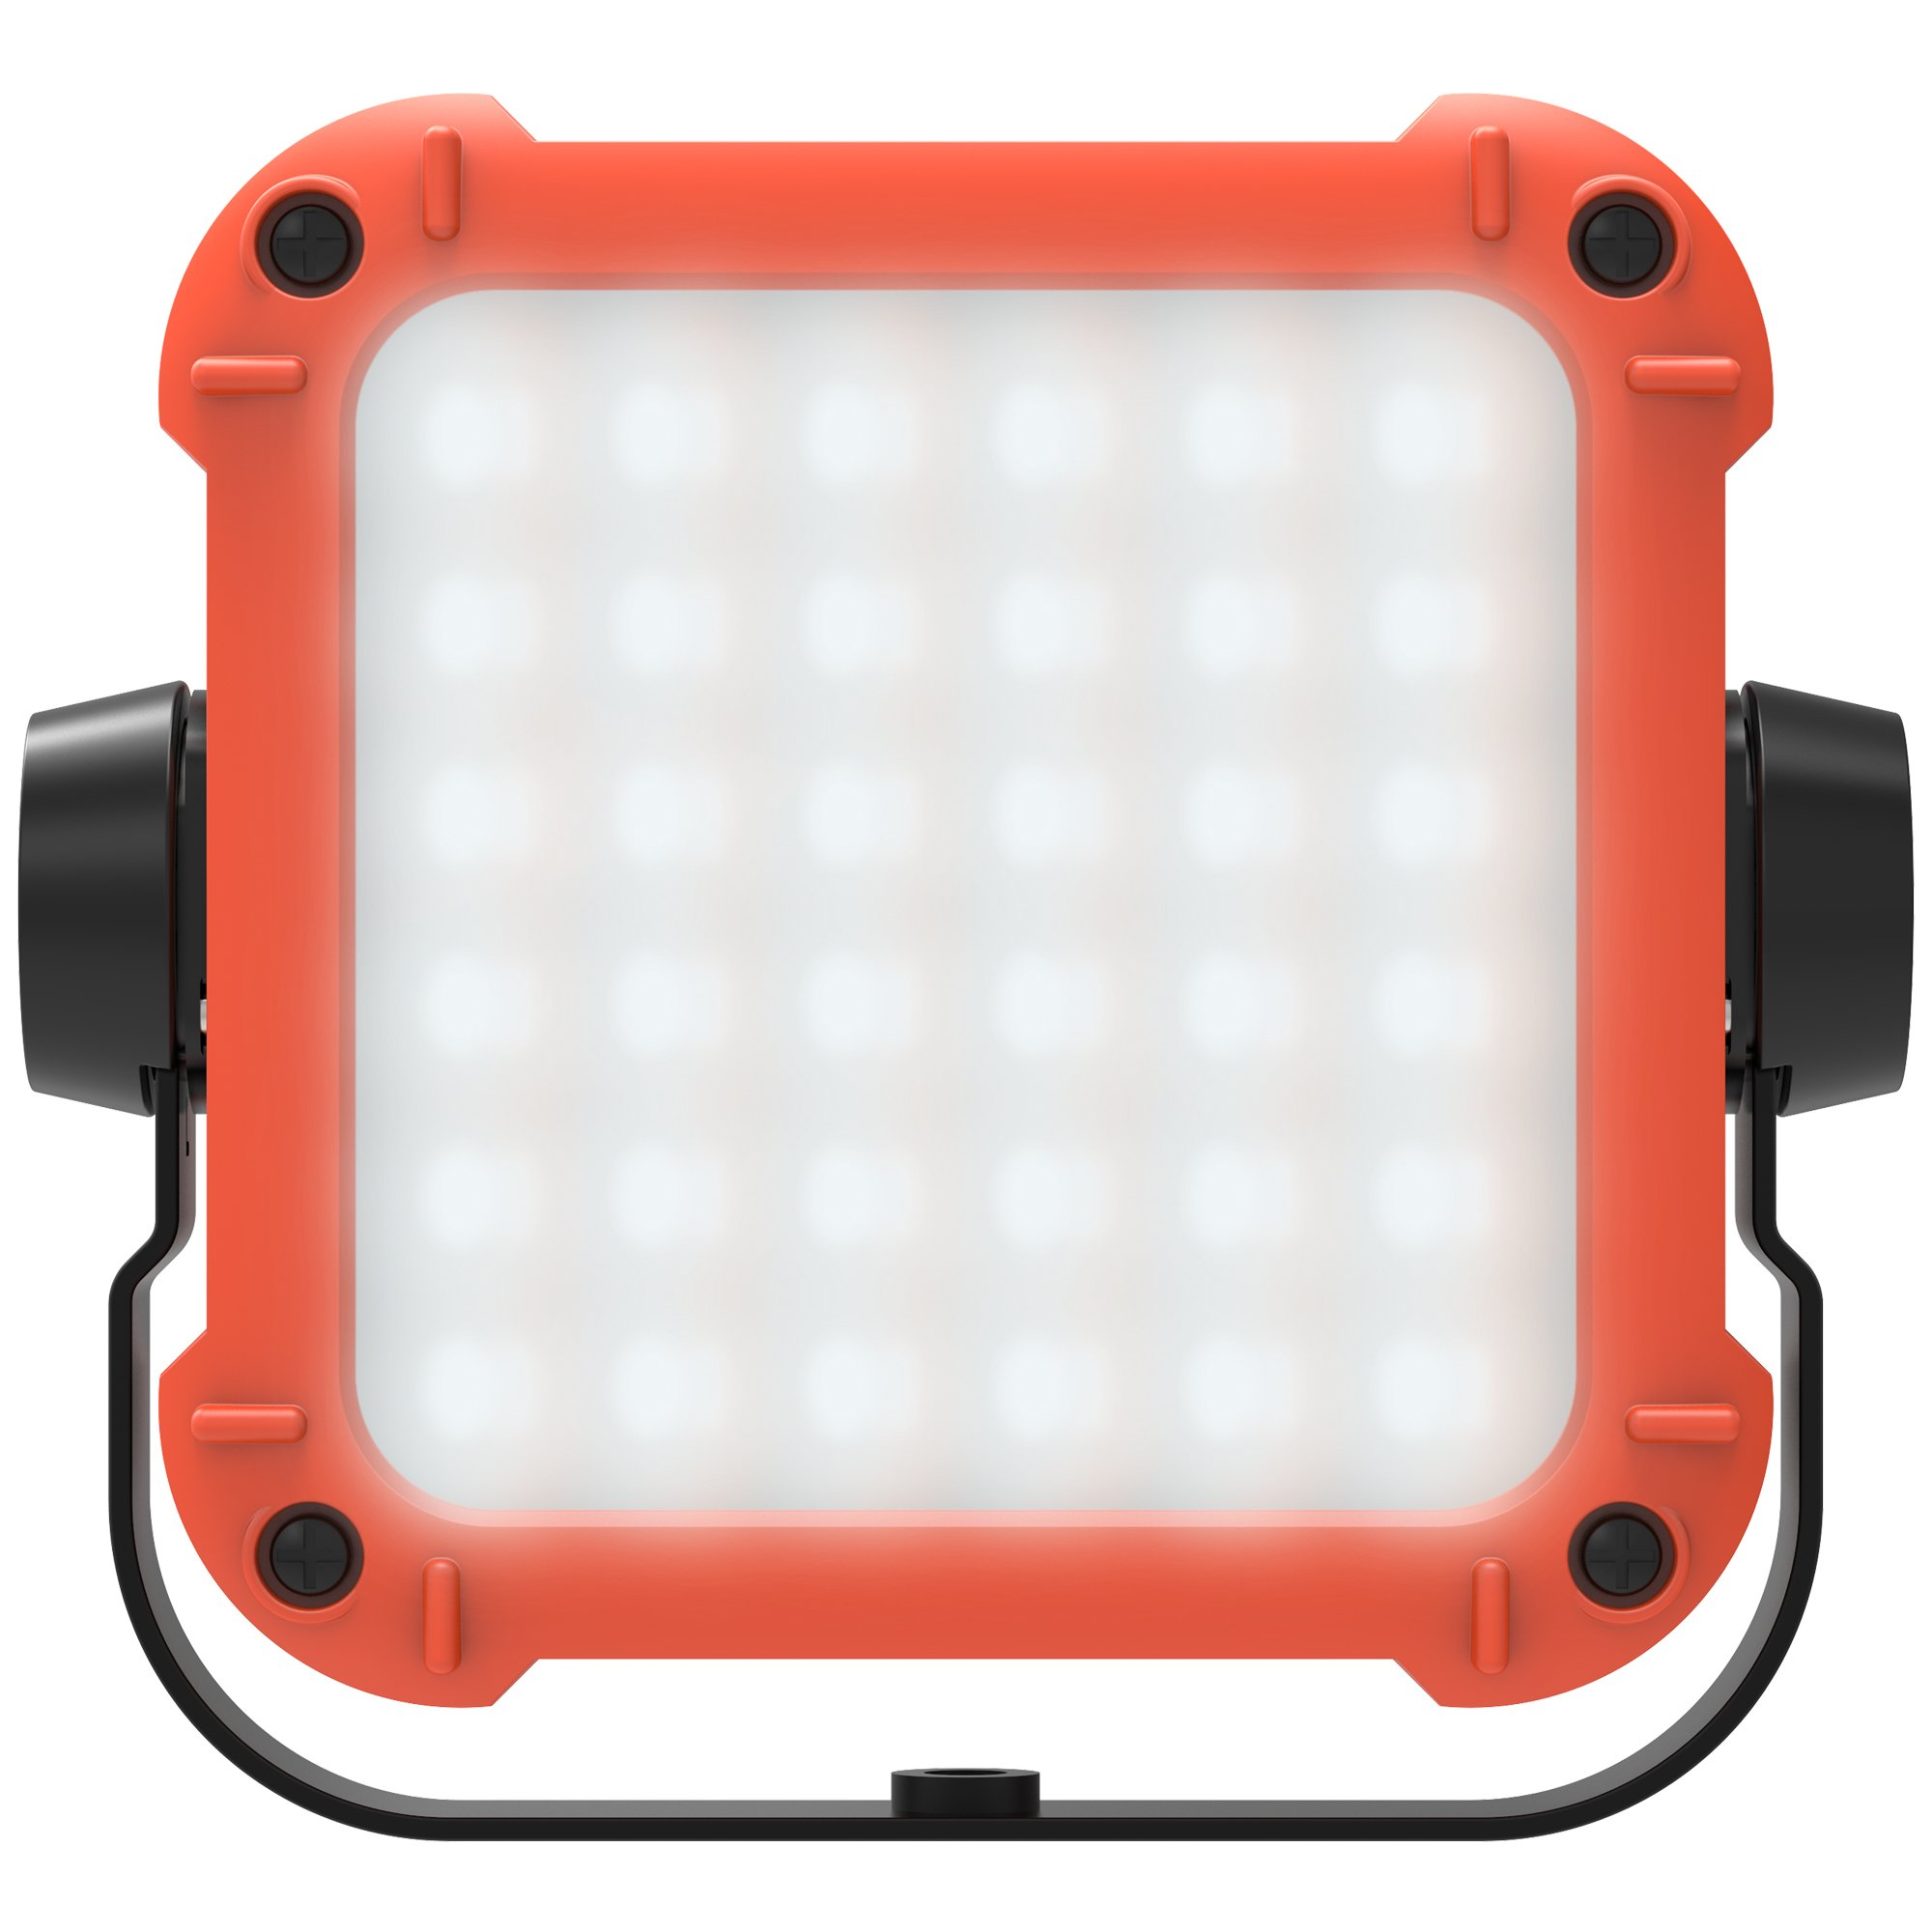 Gear Aid FLUX 20,800 mAh Rechargeable Light and Portable Power Station with 82 LEDs by Gear Aid (Image #2)